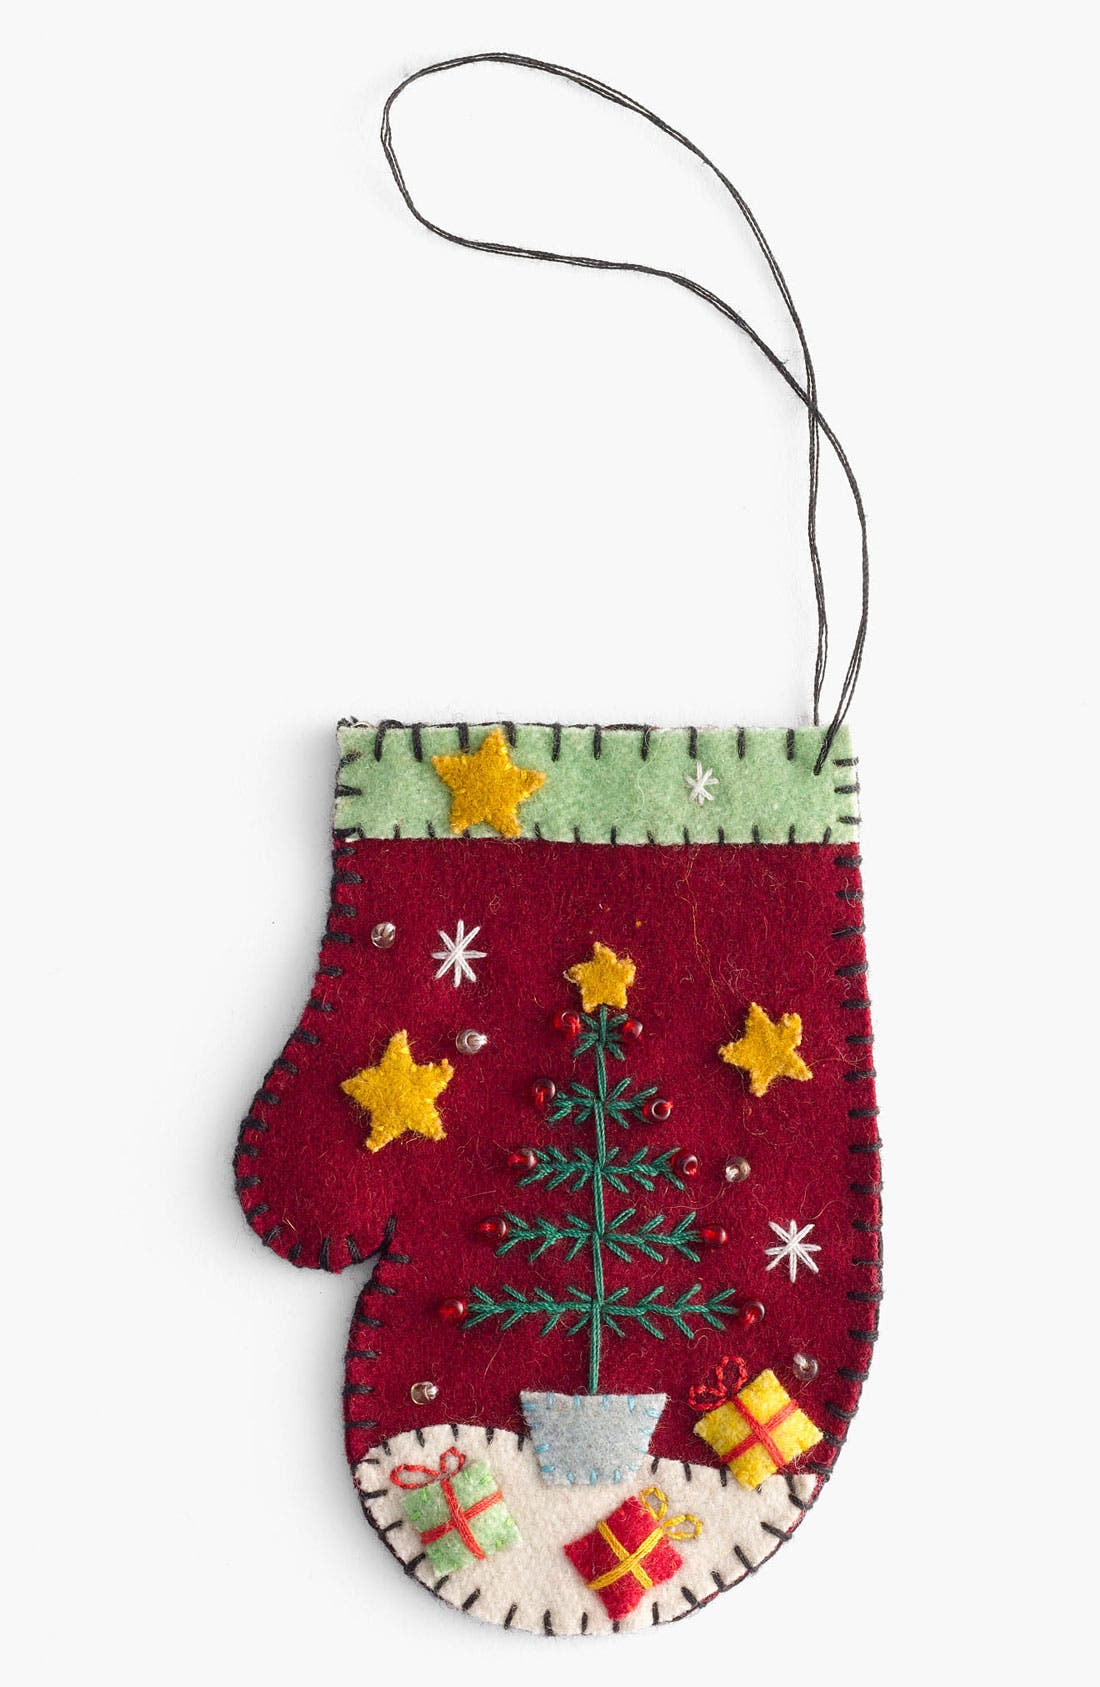 Main Image - New World Arts 'Tree with Presents' Mitten Ornament